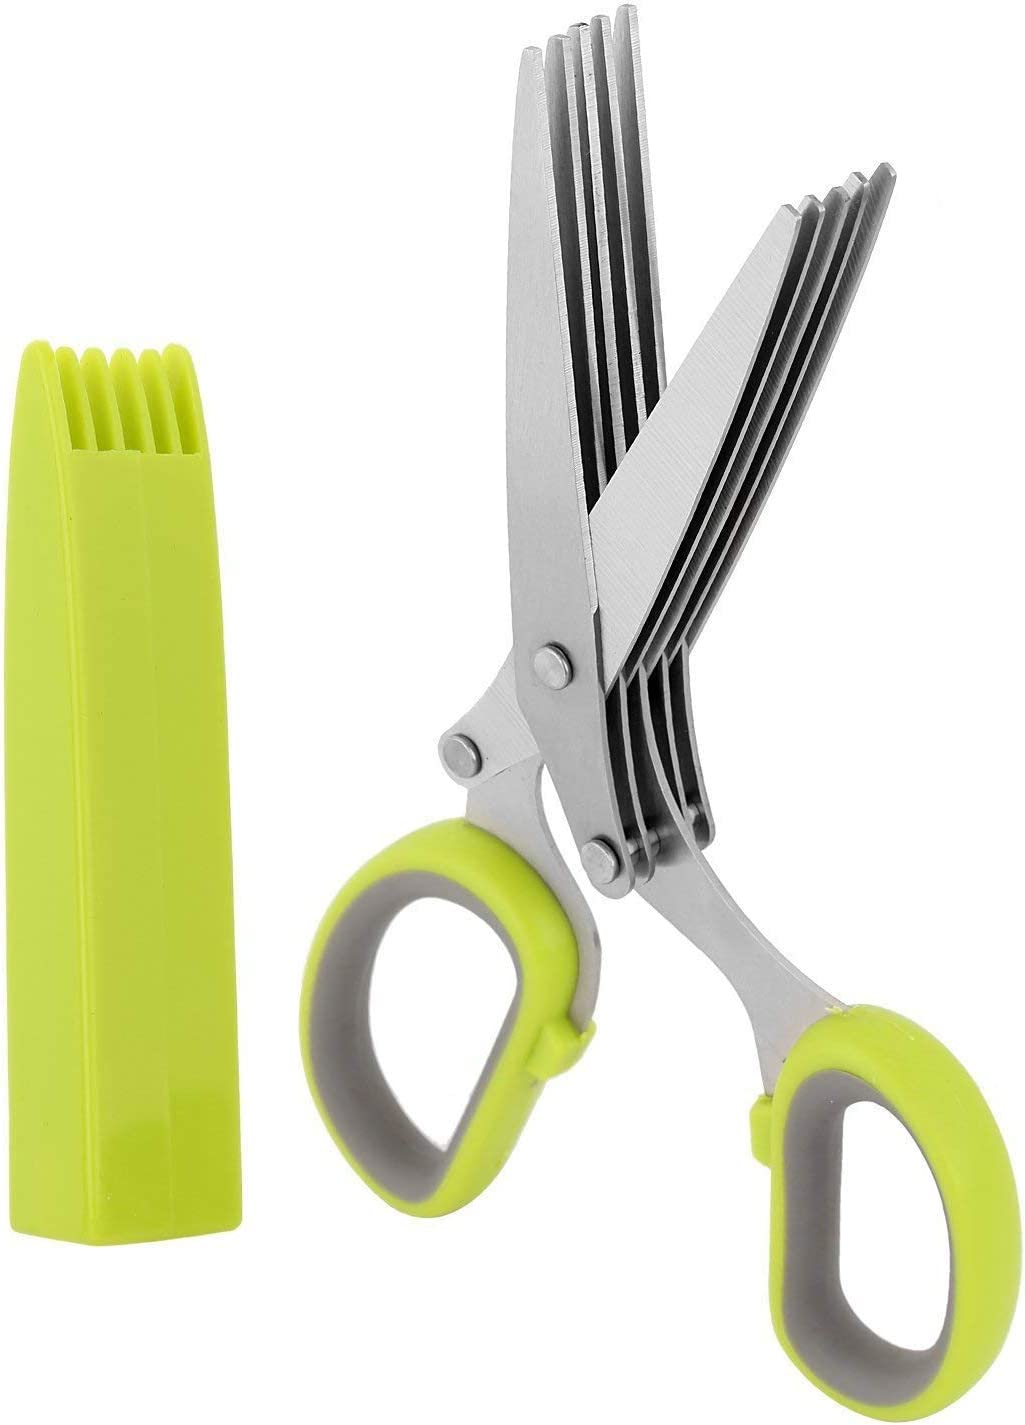 Emoly Herb Scissors, Multipurpose 5 Blade Kitchen Cutting Shear with Safety Cover and Cleaning Comb